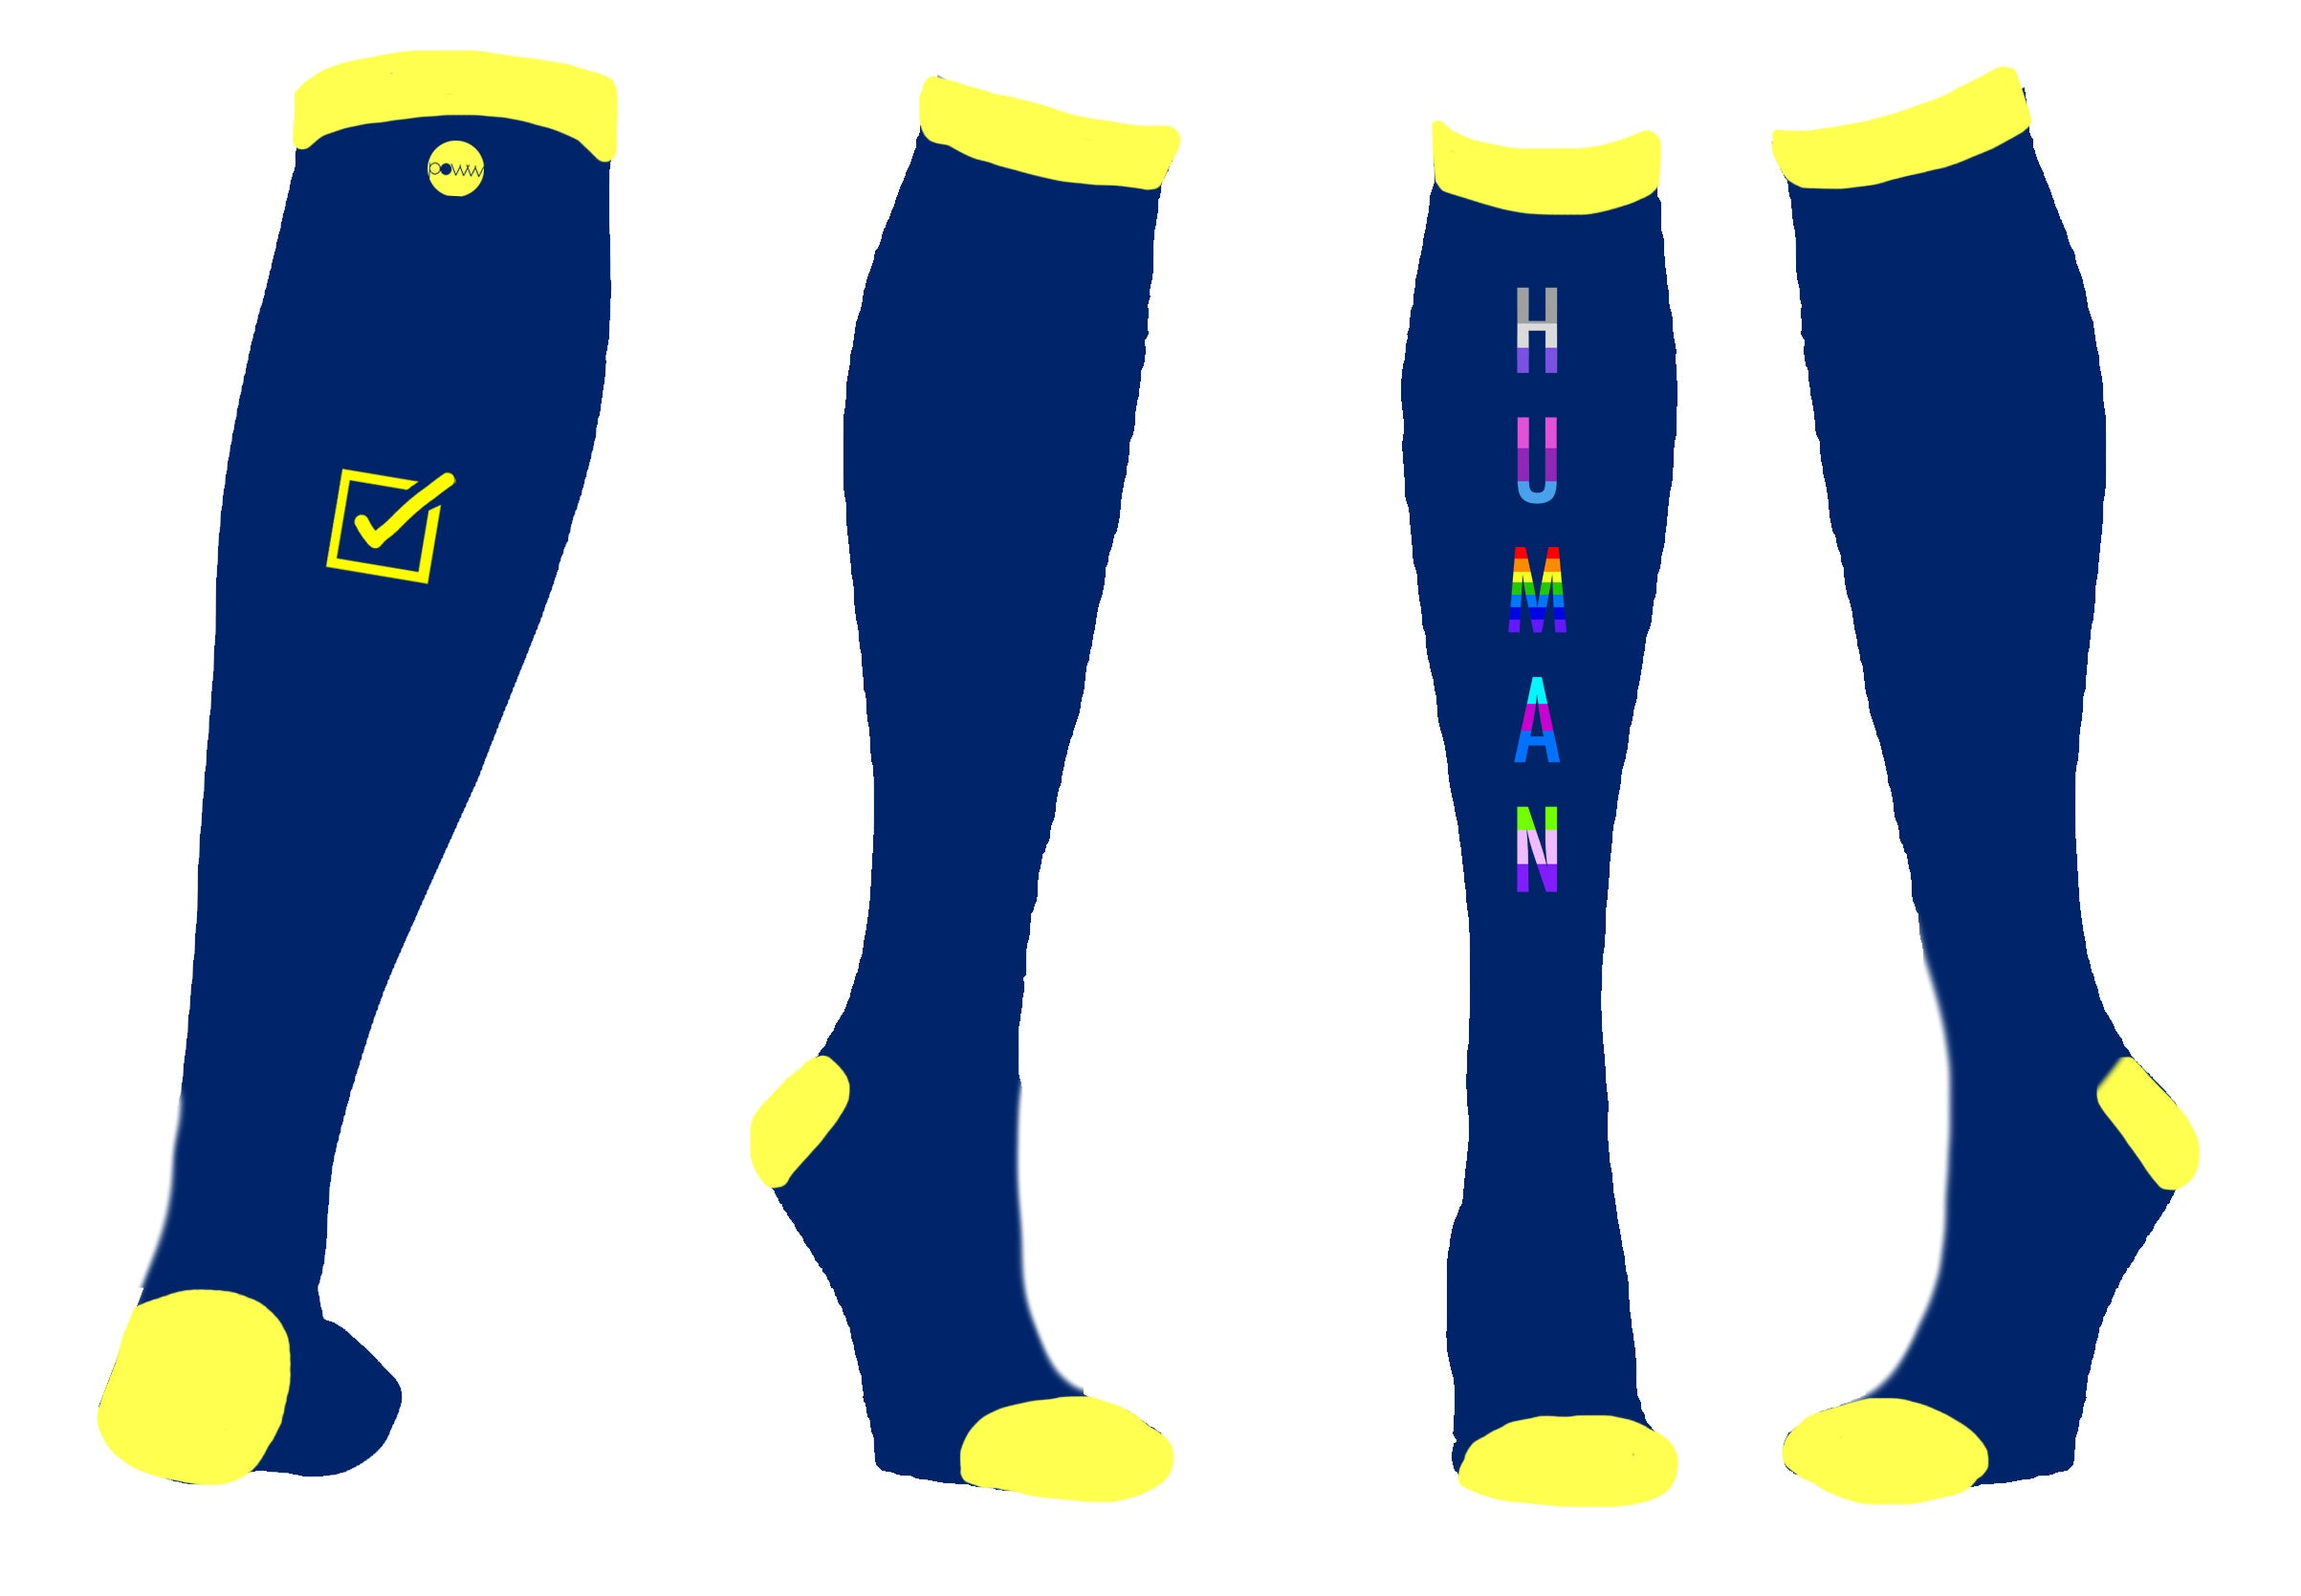 Power Socks - We Are All Human - Design Inspiration